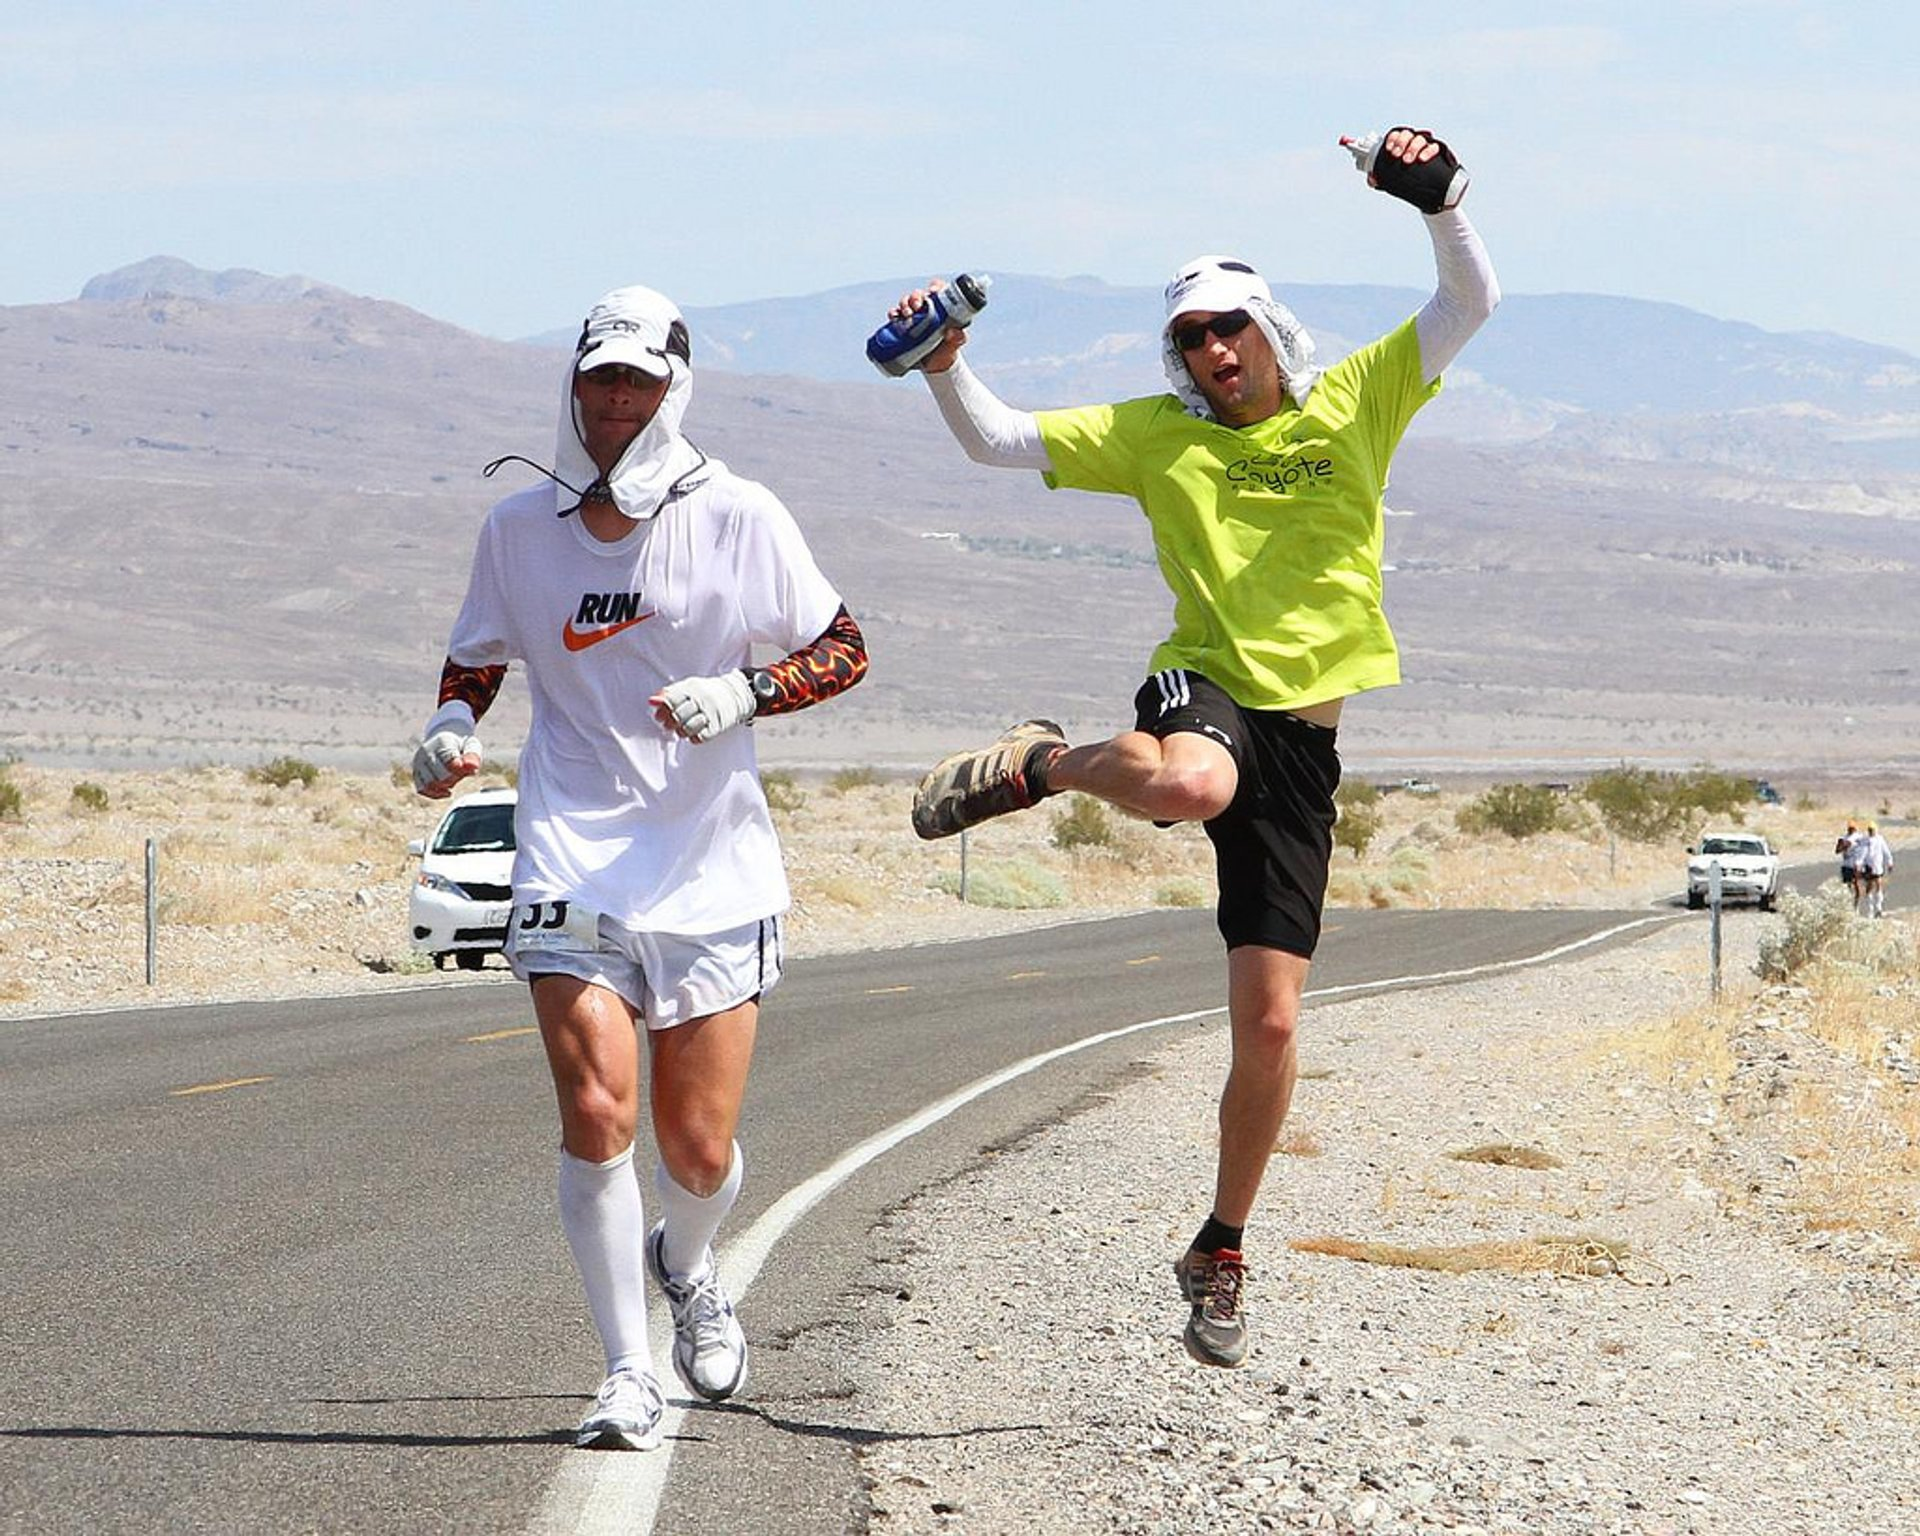 Badwater 135 Ultramarathon in Death Valley - Best Season 2019